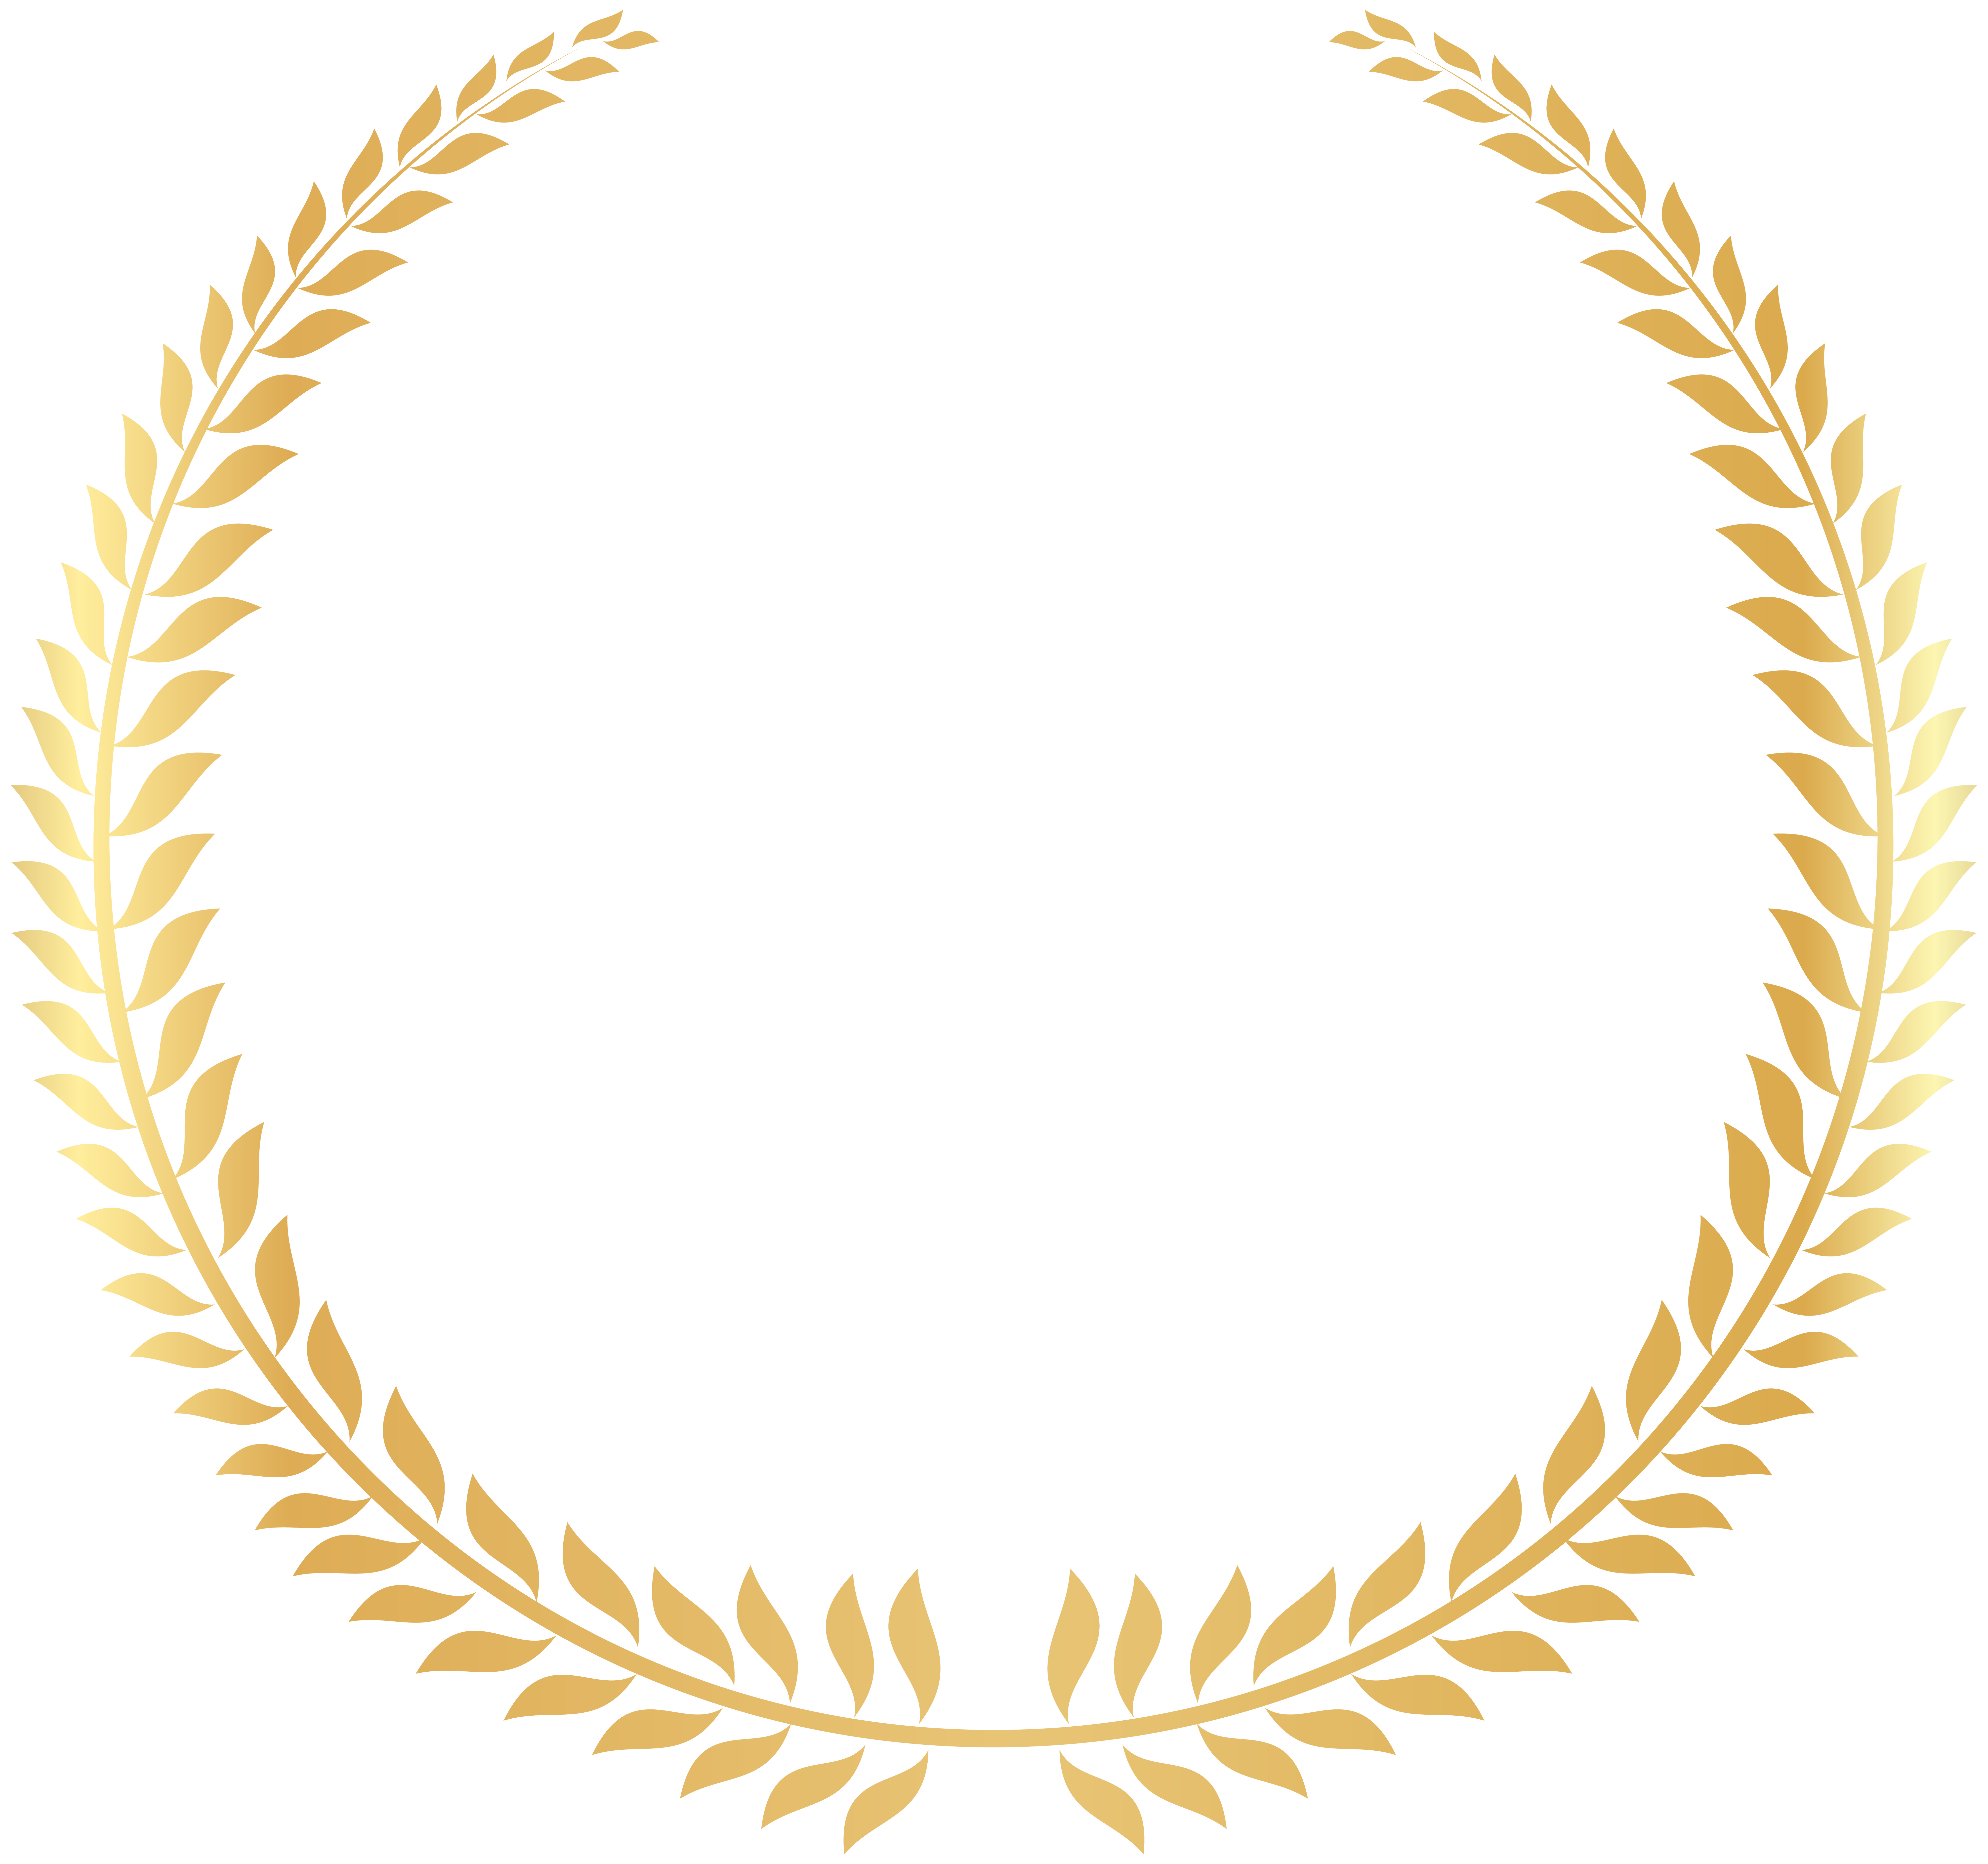 picture royalty free stock Free laurel wreath clipart. Clip art png image